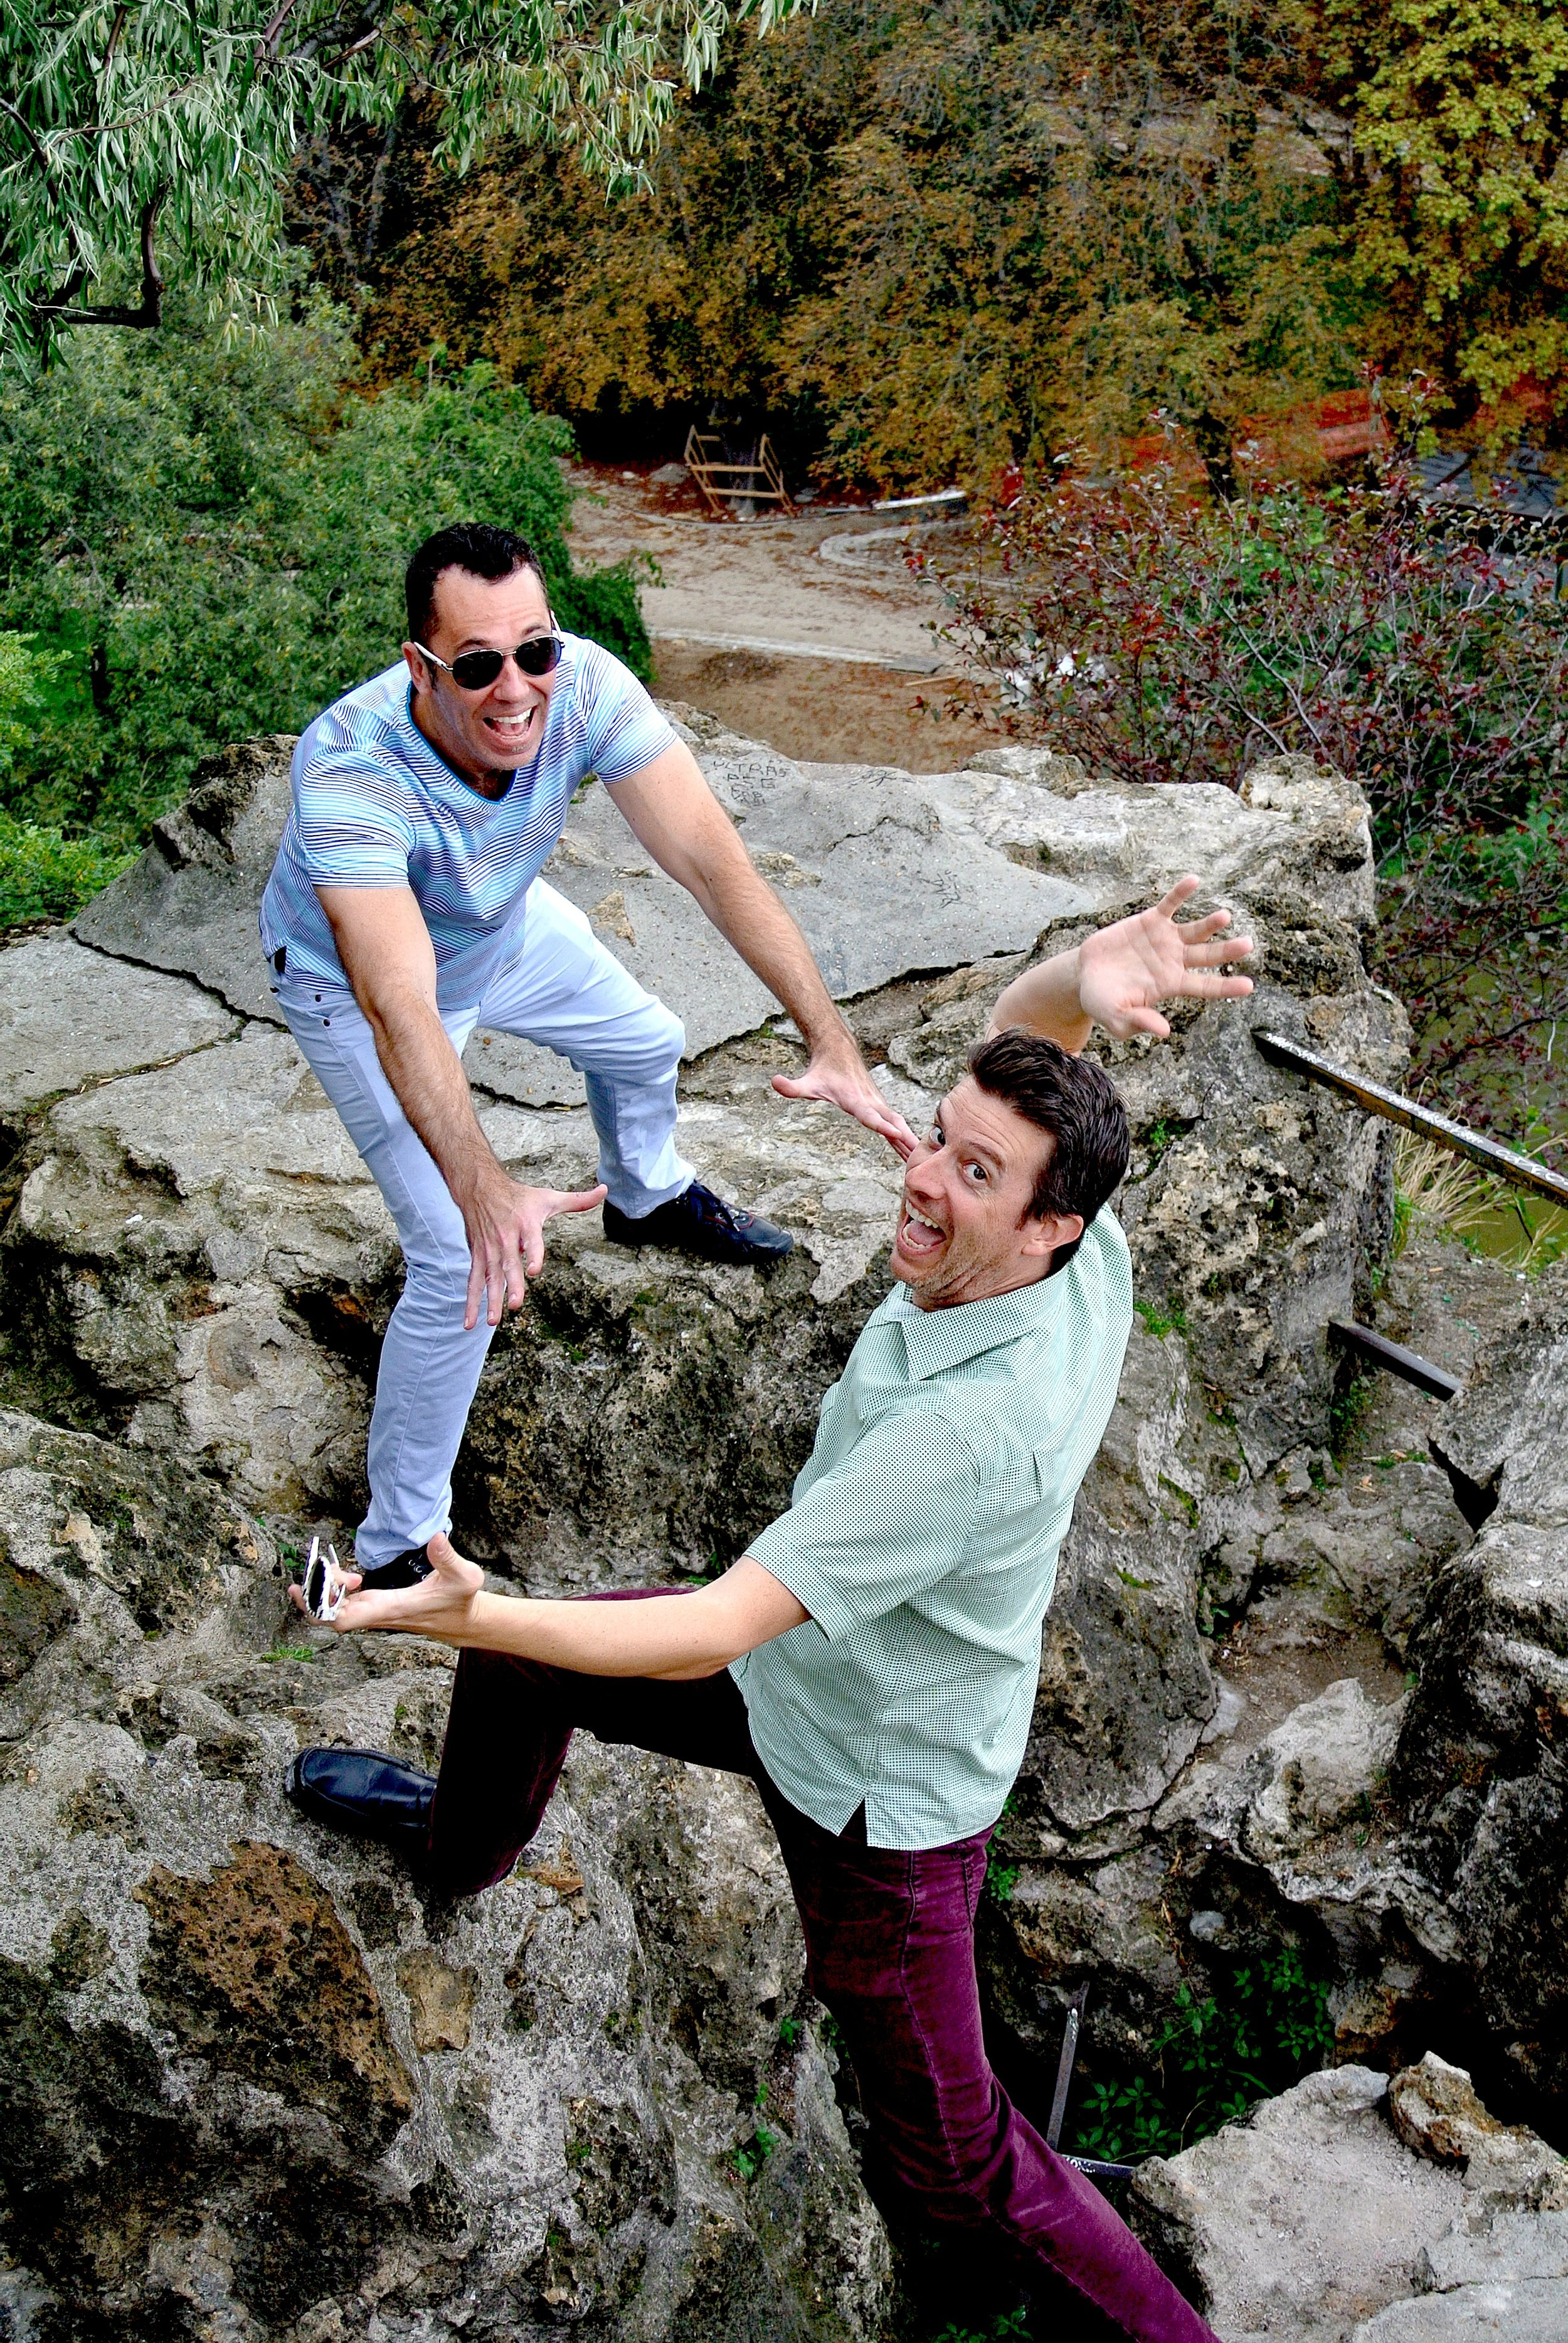 Even though Kent and Wally are joking around, there are some precarious perches in Buttes Chaumont — be careful!